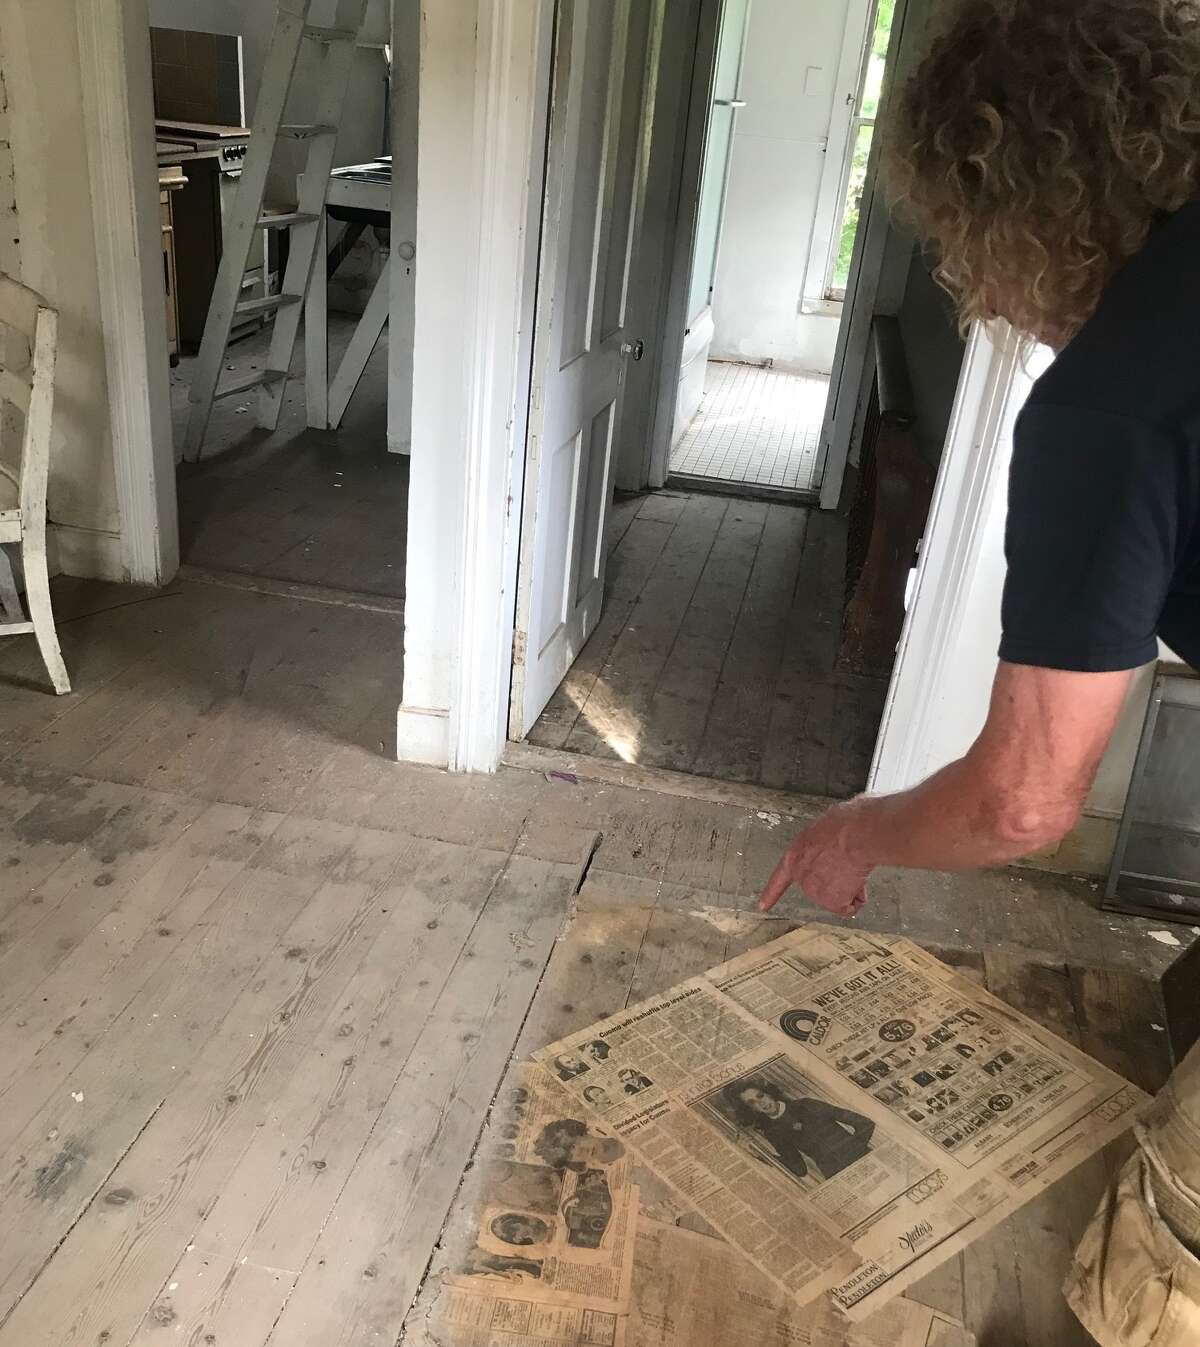 Inside Frank Cuthbert's new project in Athens, with some old newspapers including he had just found under a sheet of linoleum.